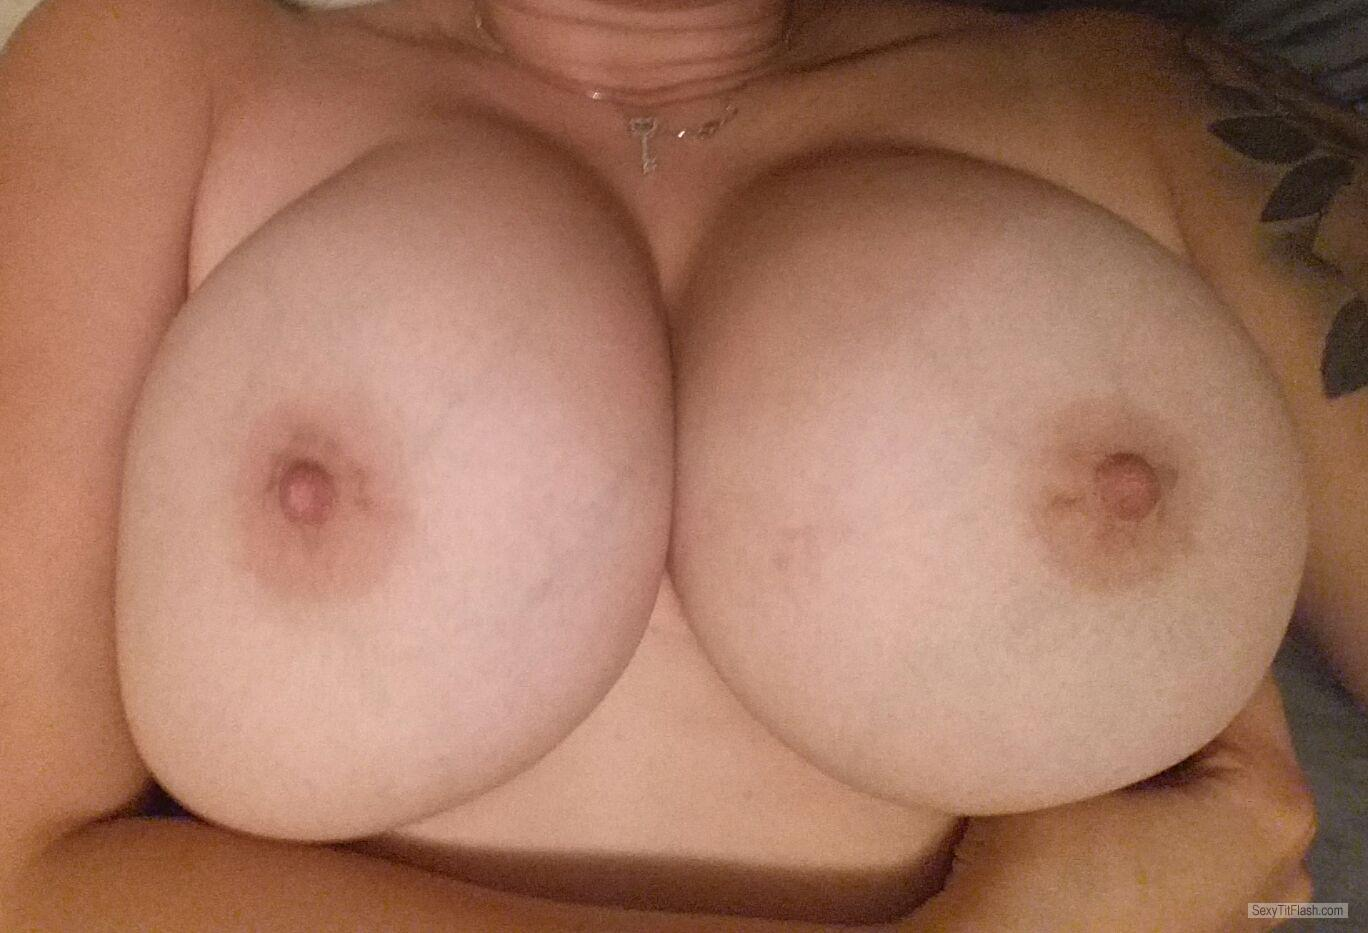 My Very big Tits Topless Sexy1